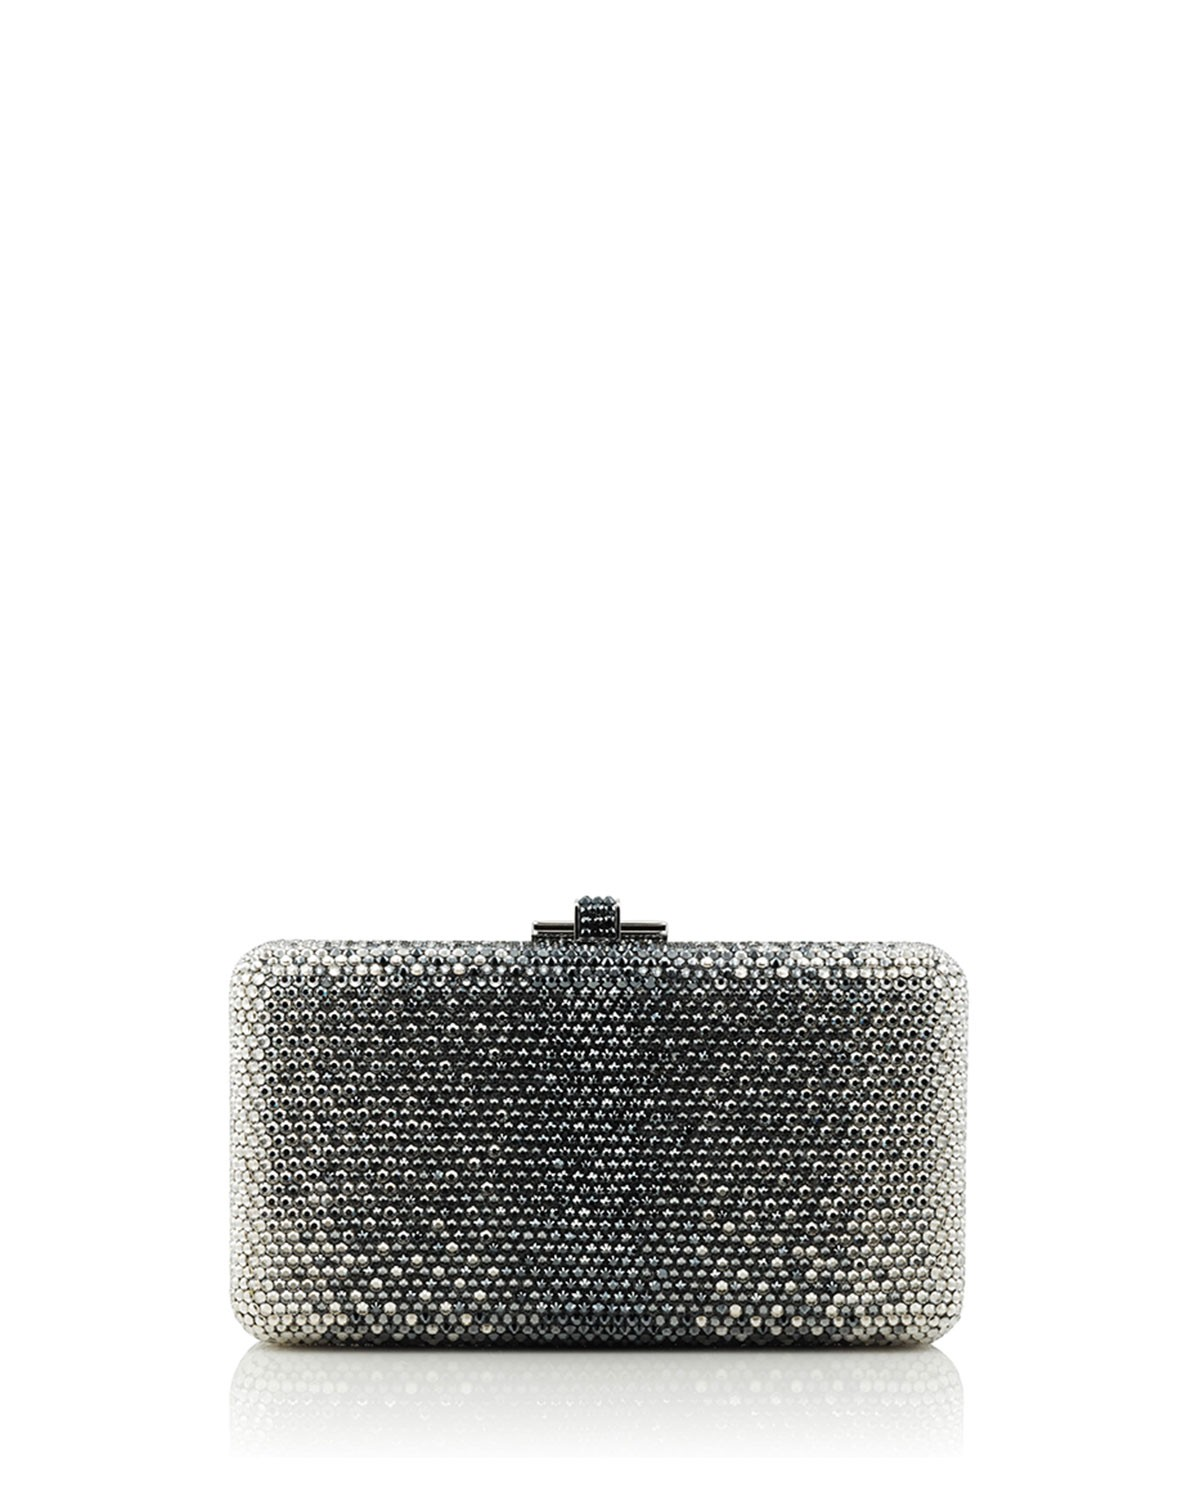 Airstream Large Ombre Clutch Bag, Silver Multi - Judith Leiber Couture